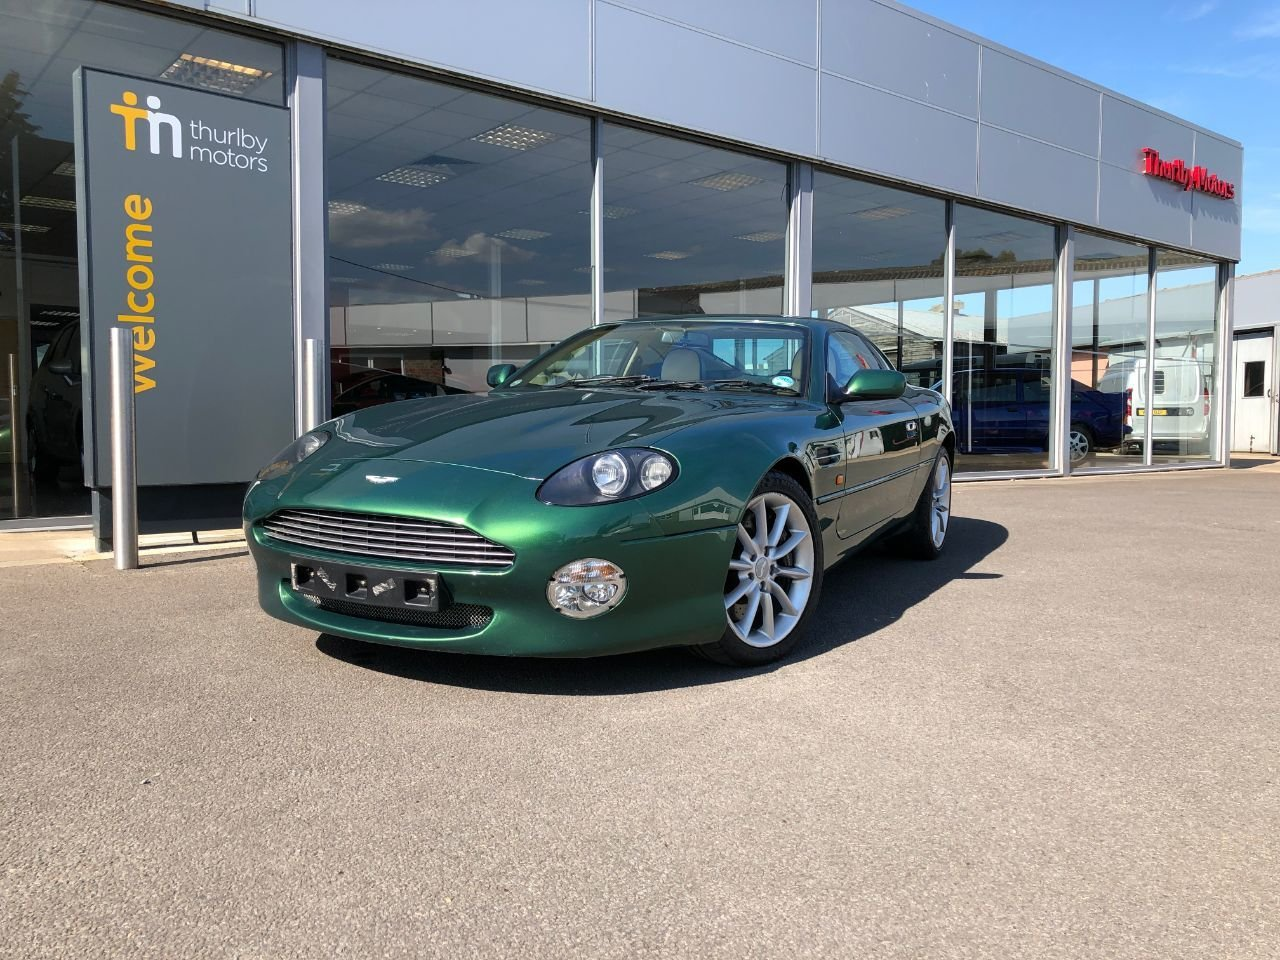 2000 Aston Martin DB7 Vantage SOLD (picture 1 of 6)